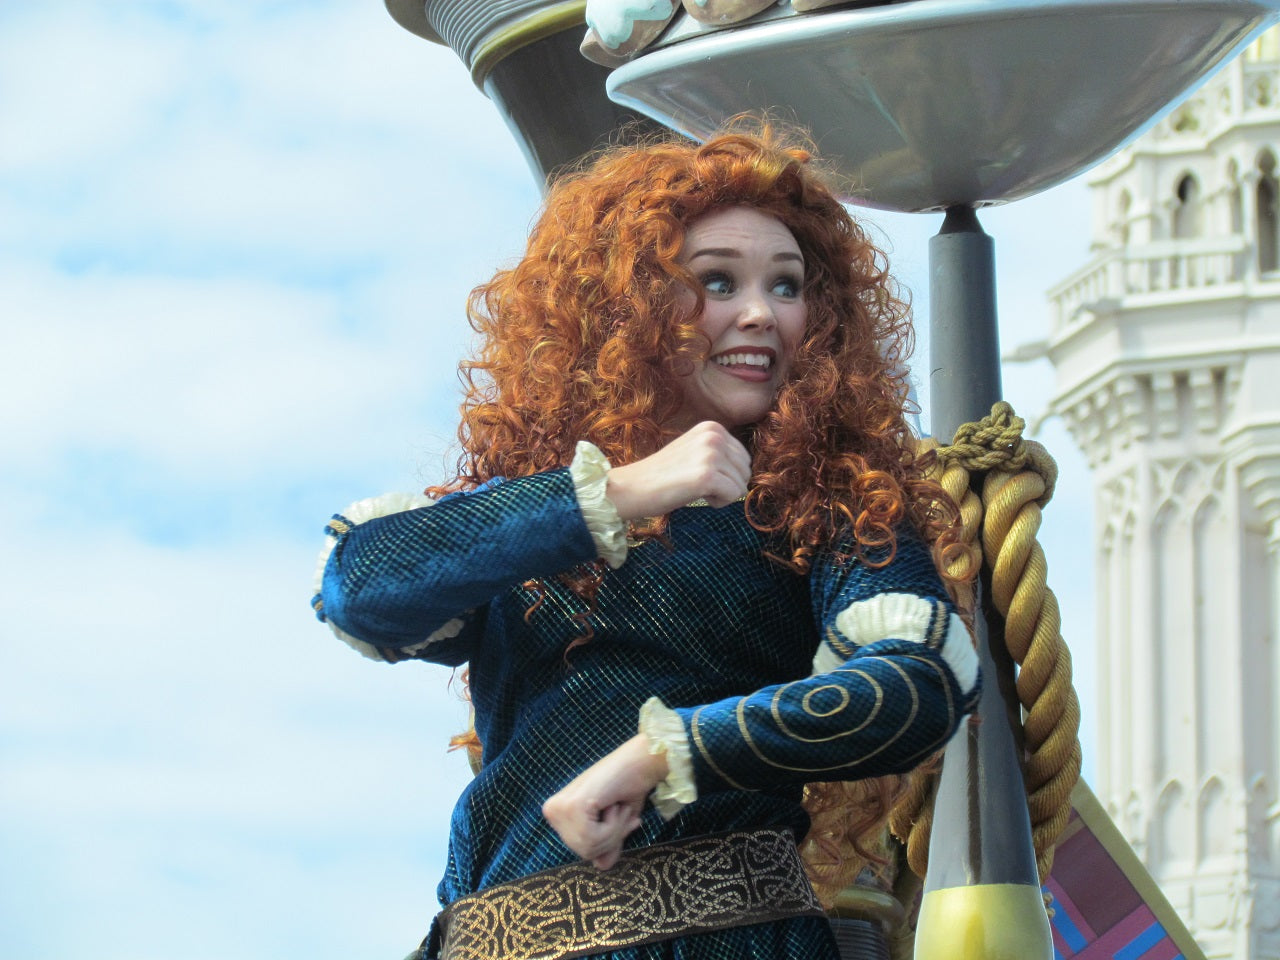 Merida festival of fantasy